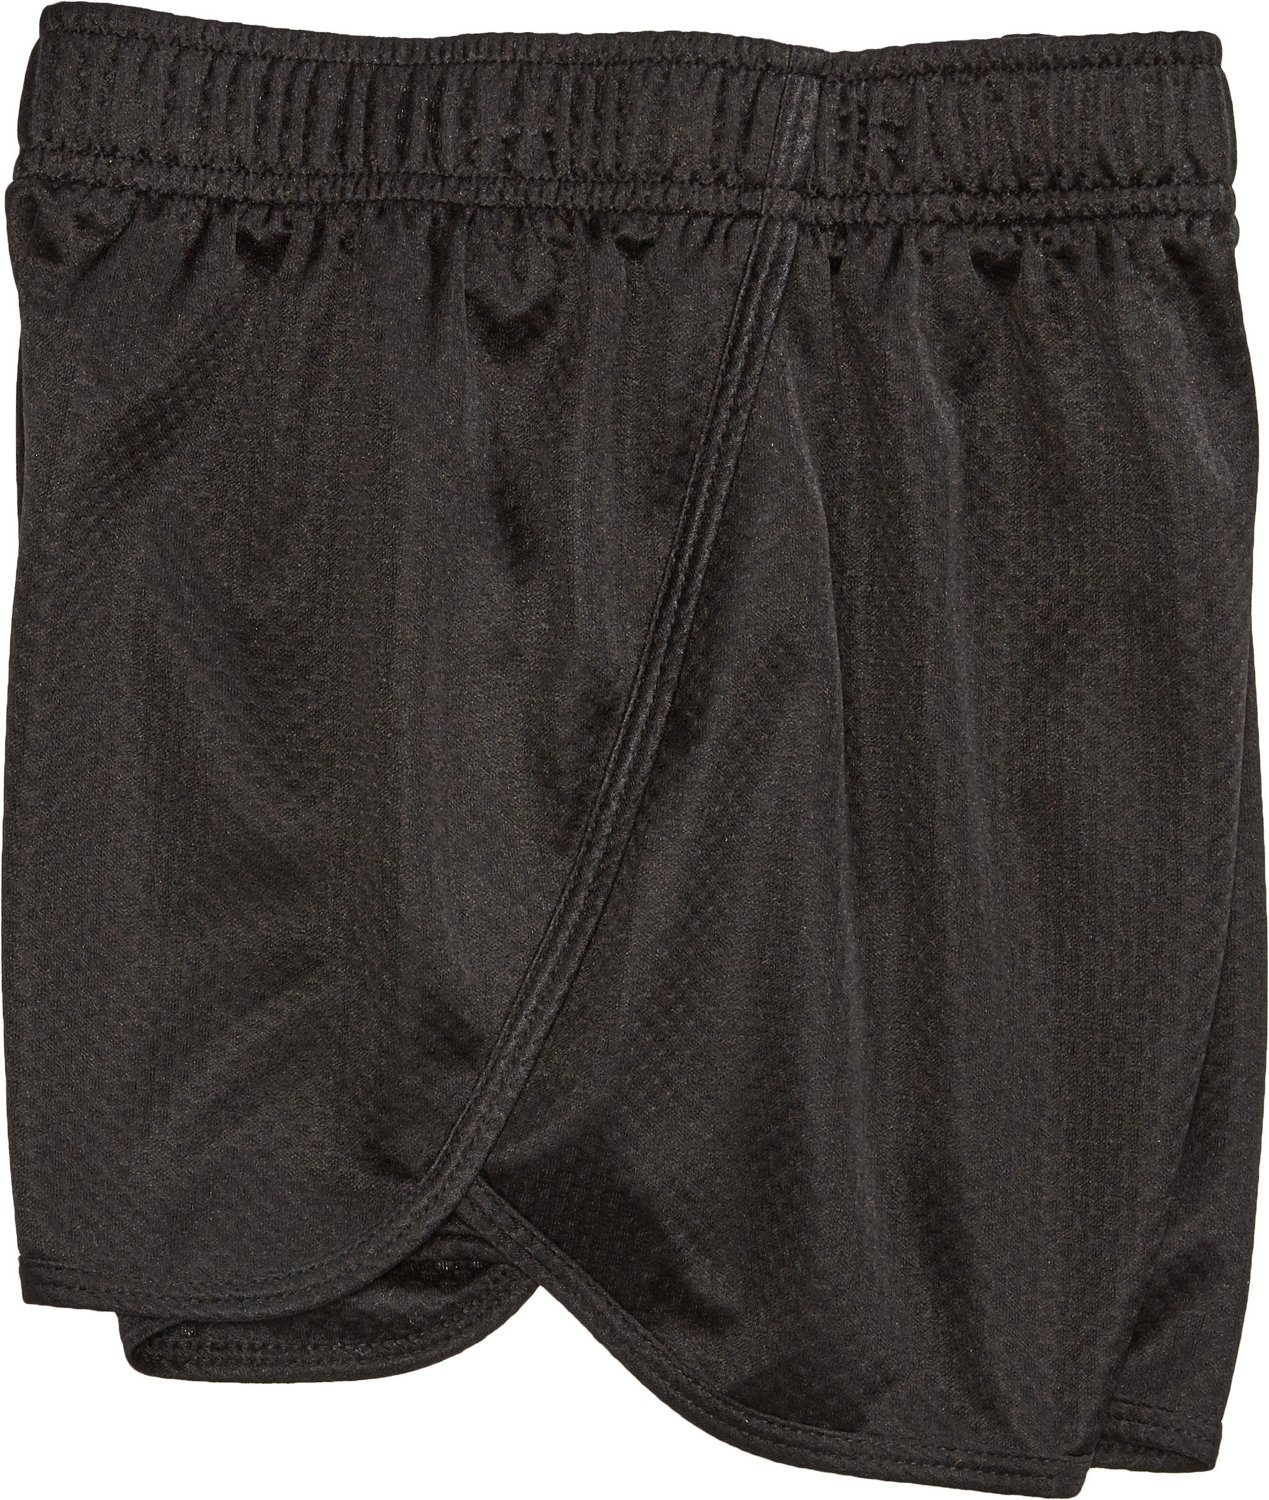 BCG Girls' Honeycomb 3 in Taped Basketball Short - view number 5